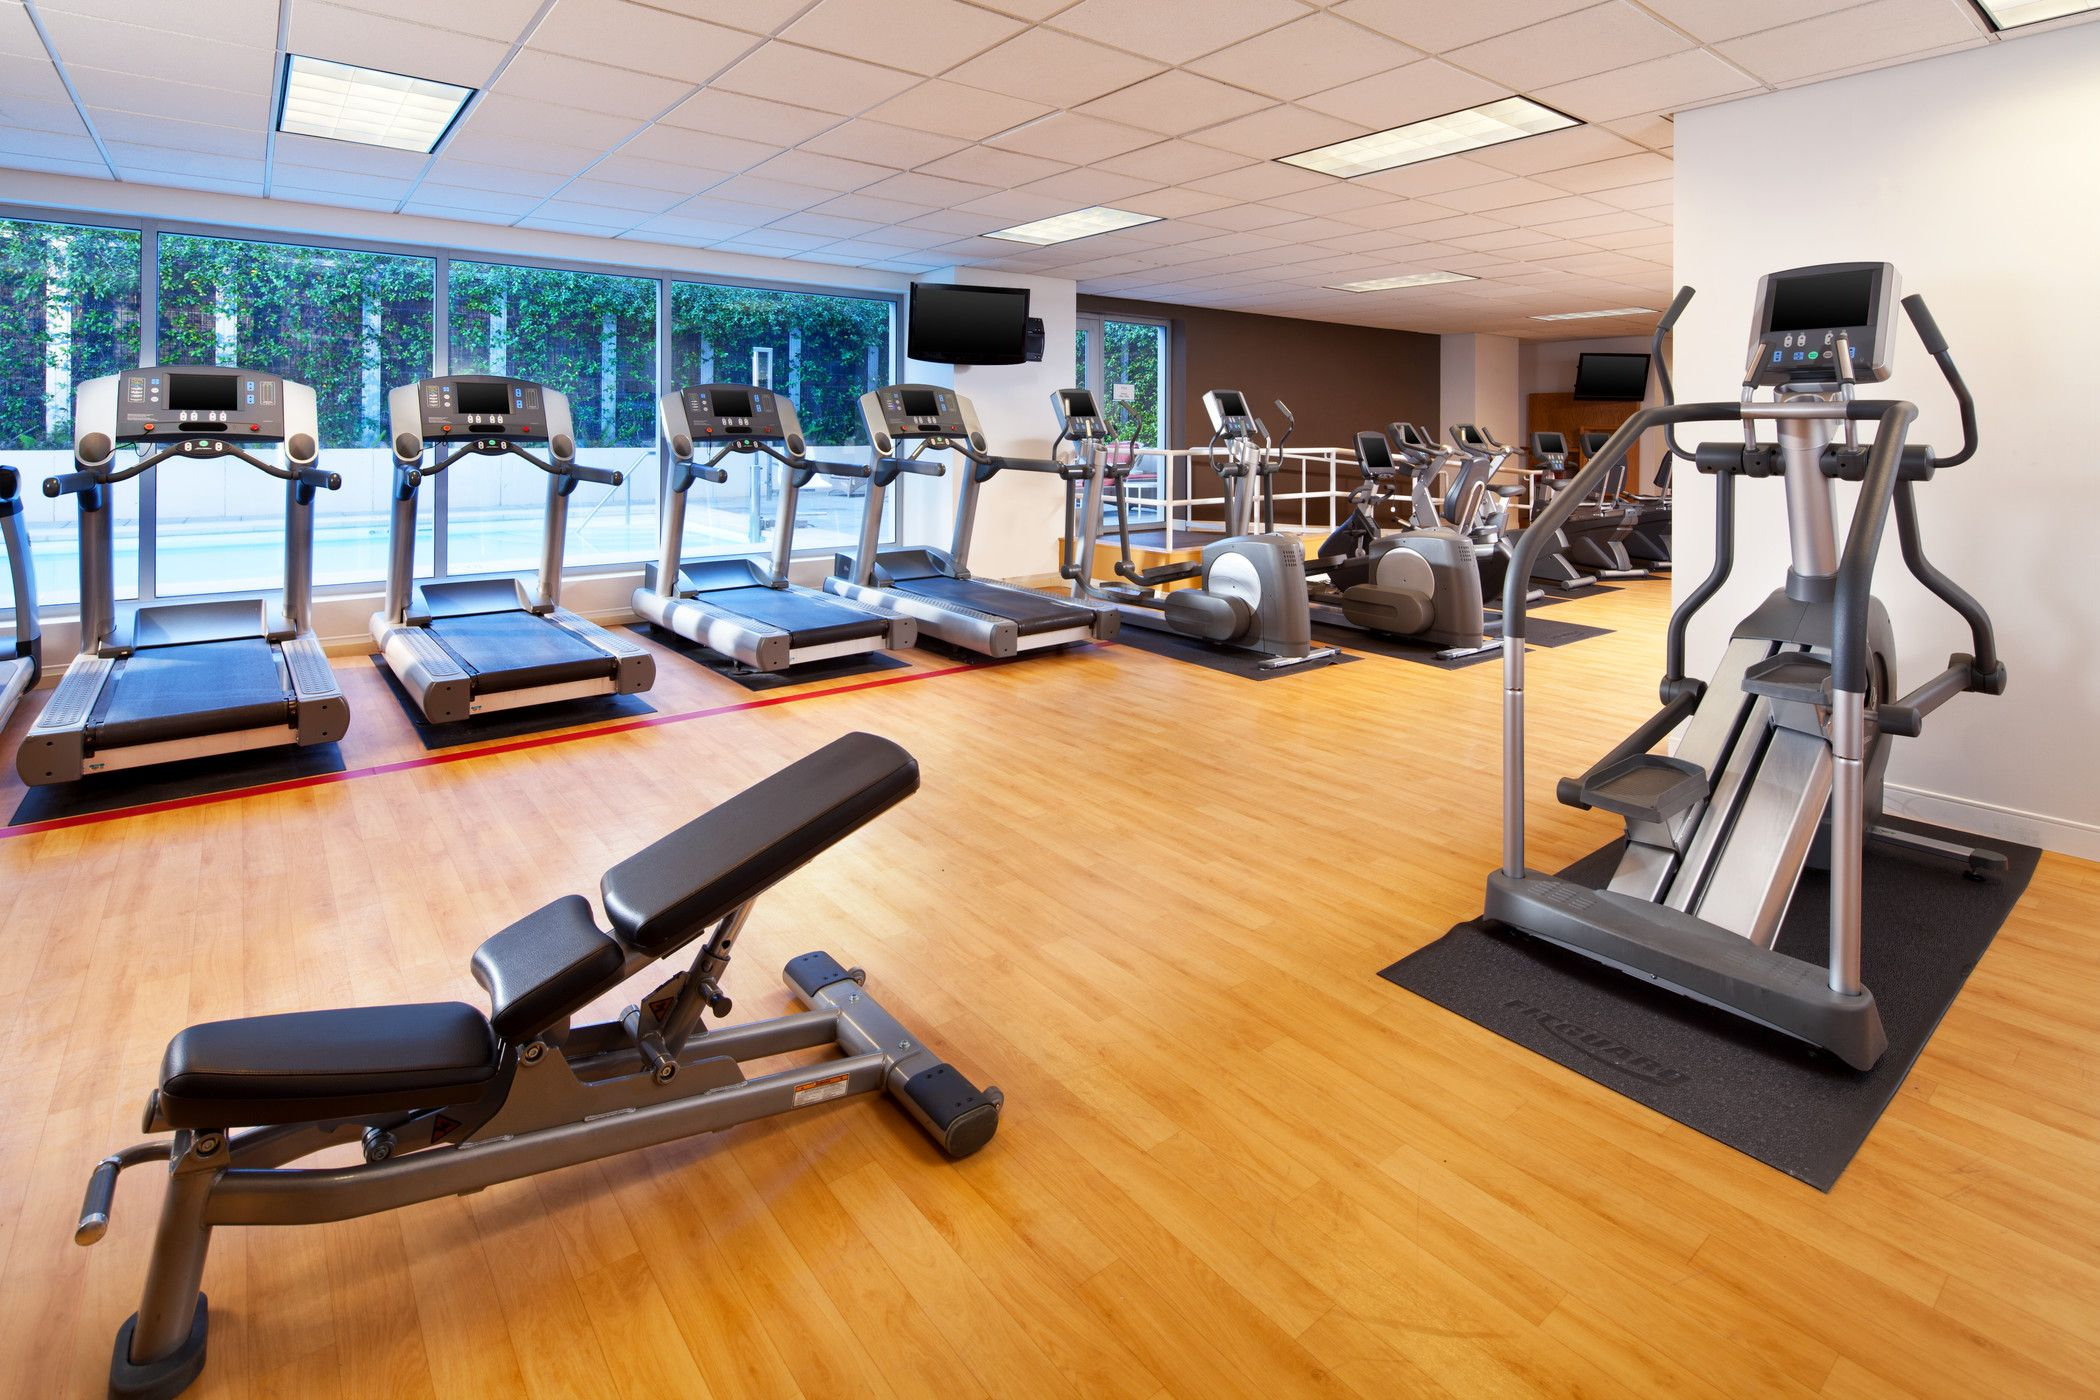 Sacramento Hotel Features - Fitness Center